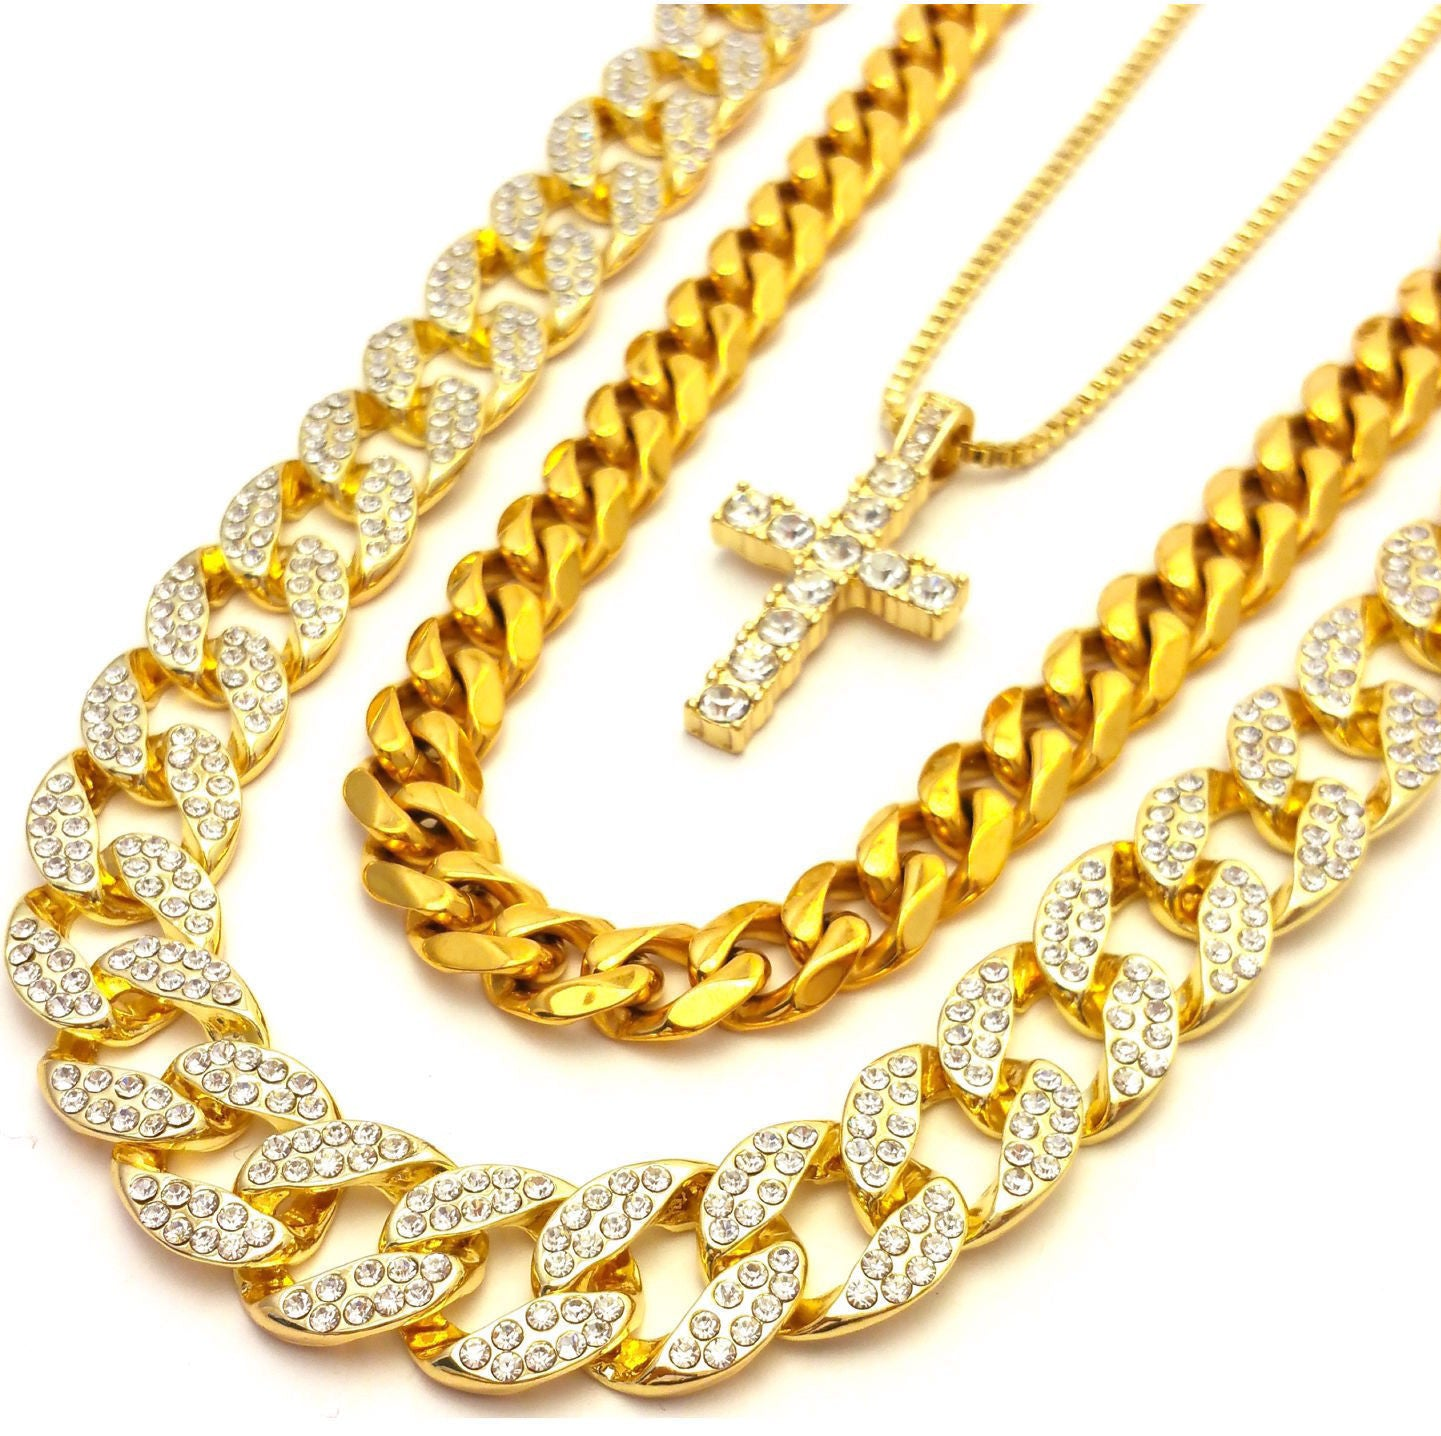 products collections jewellery girlscrew sm filled img choker coin necklaces chain gold